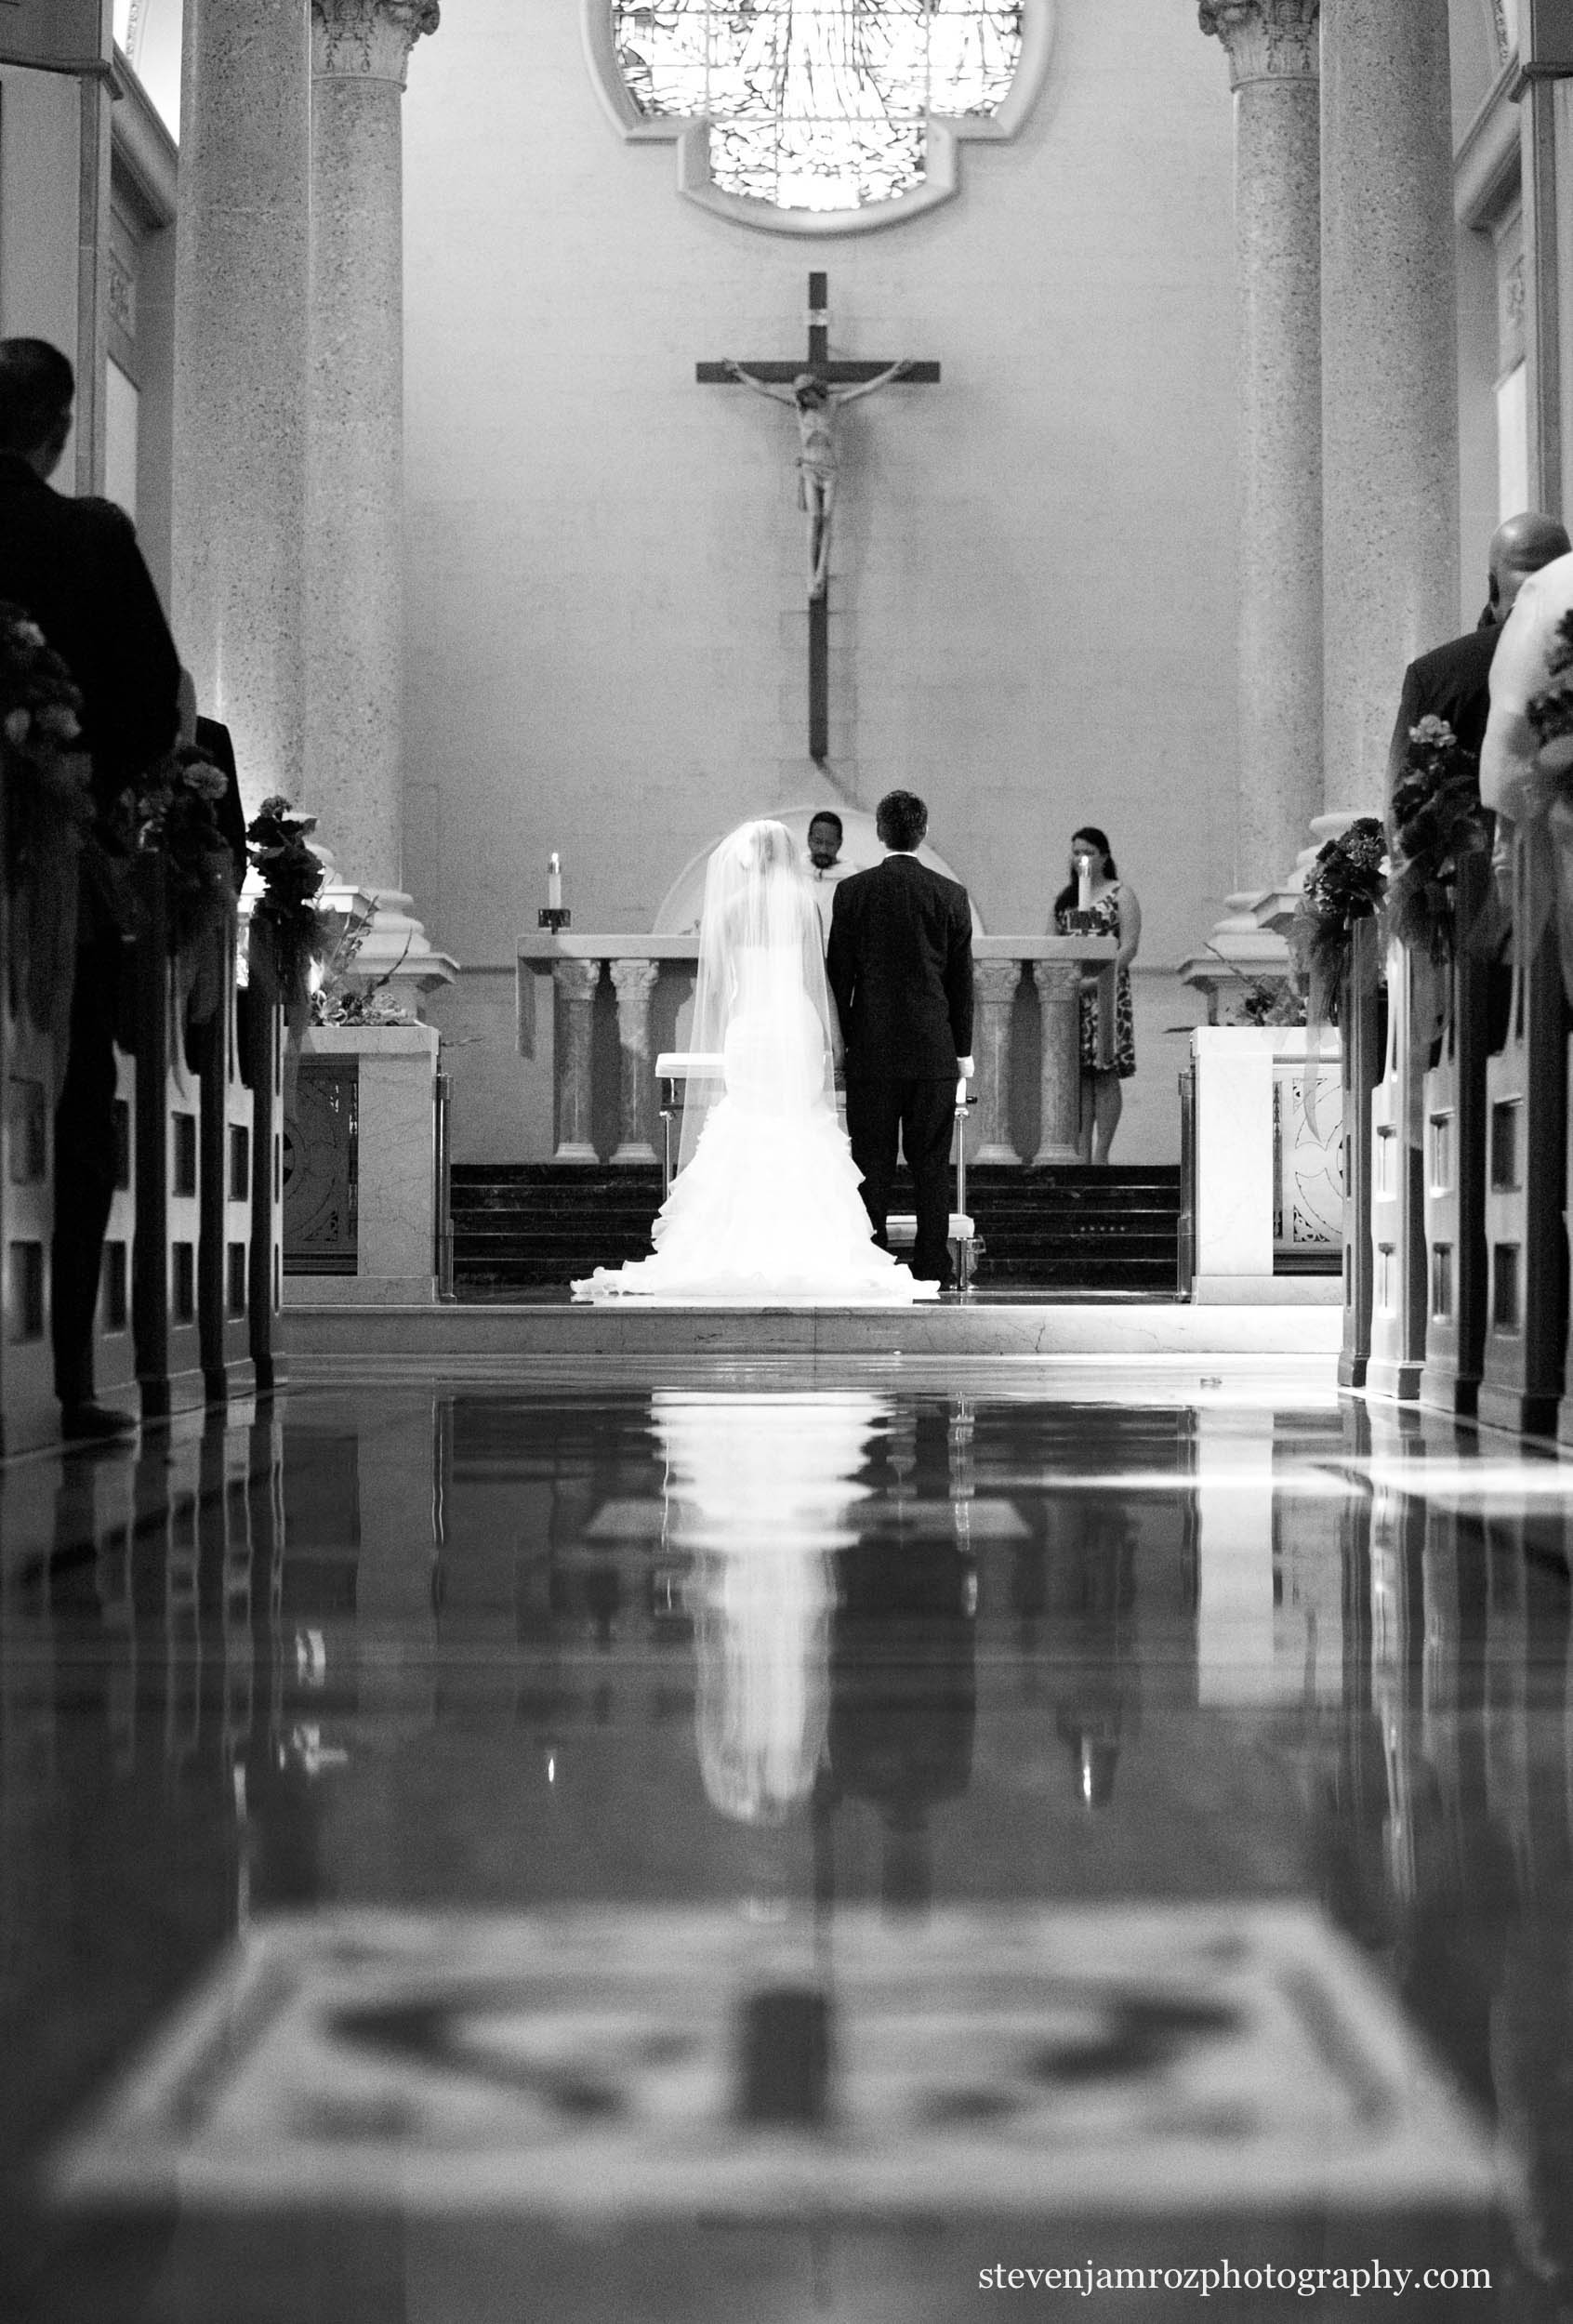 church-wedding-reflection-floor-raleigh-wedding-photos-steven-jamroz-0726.jpg